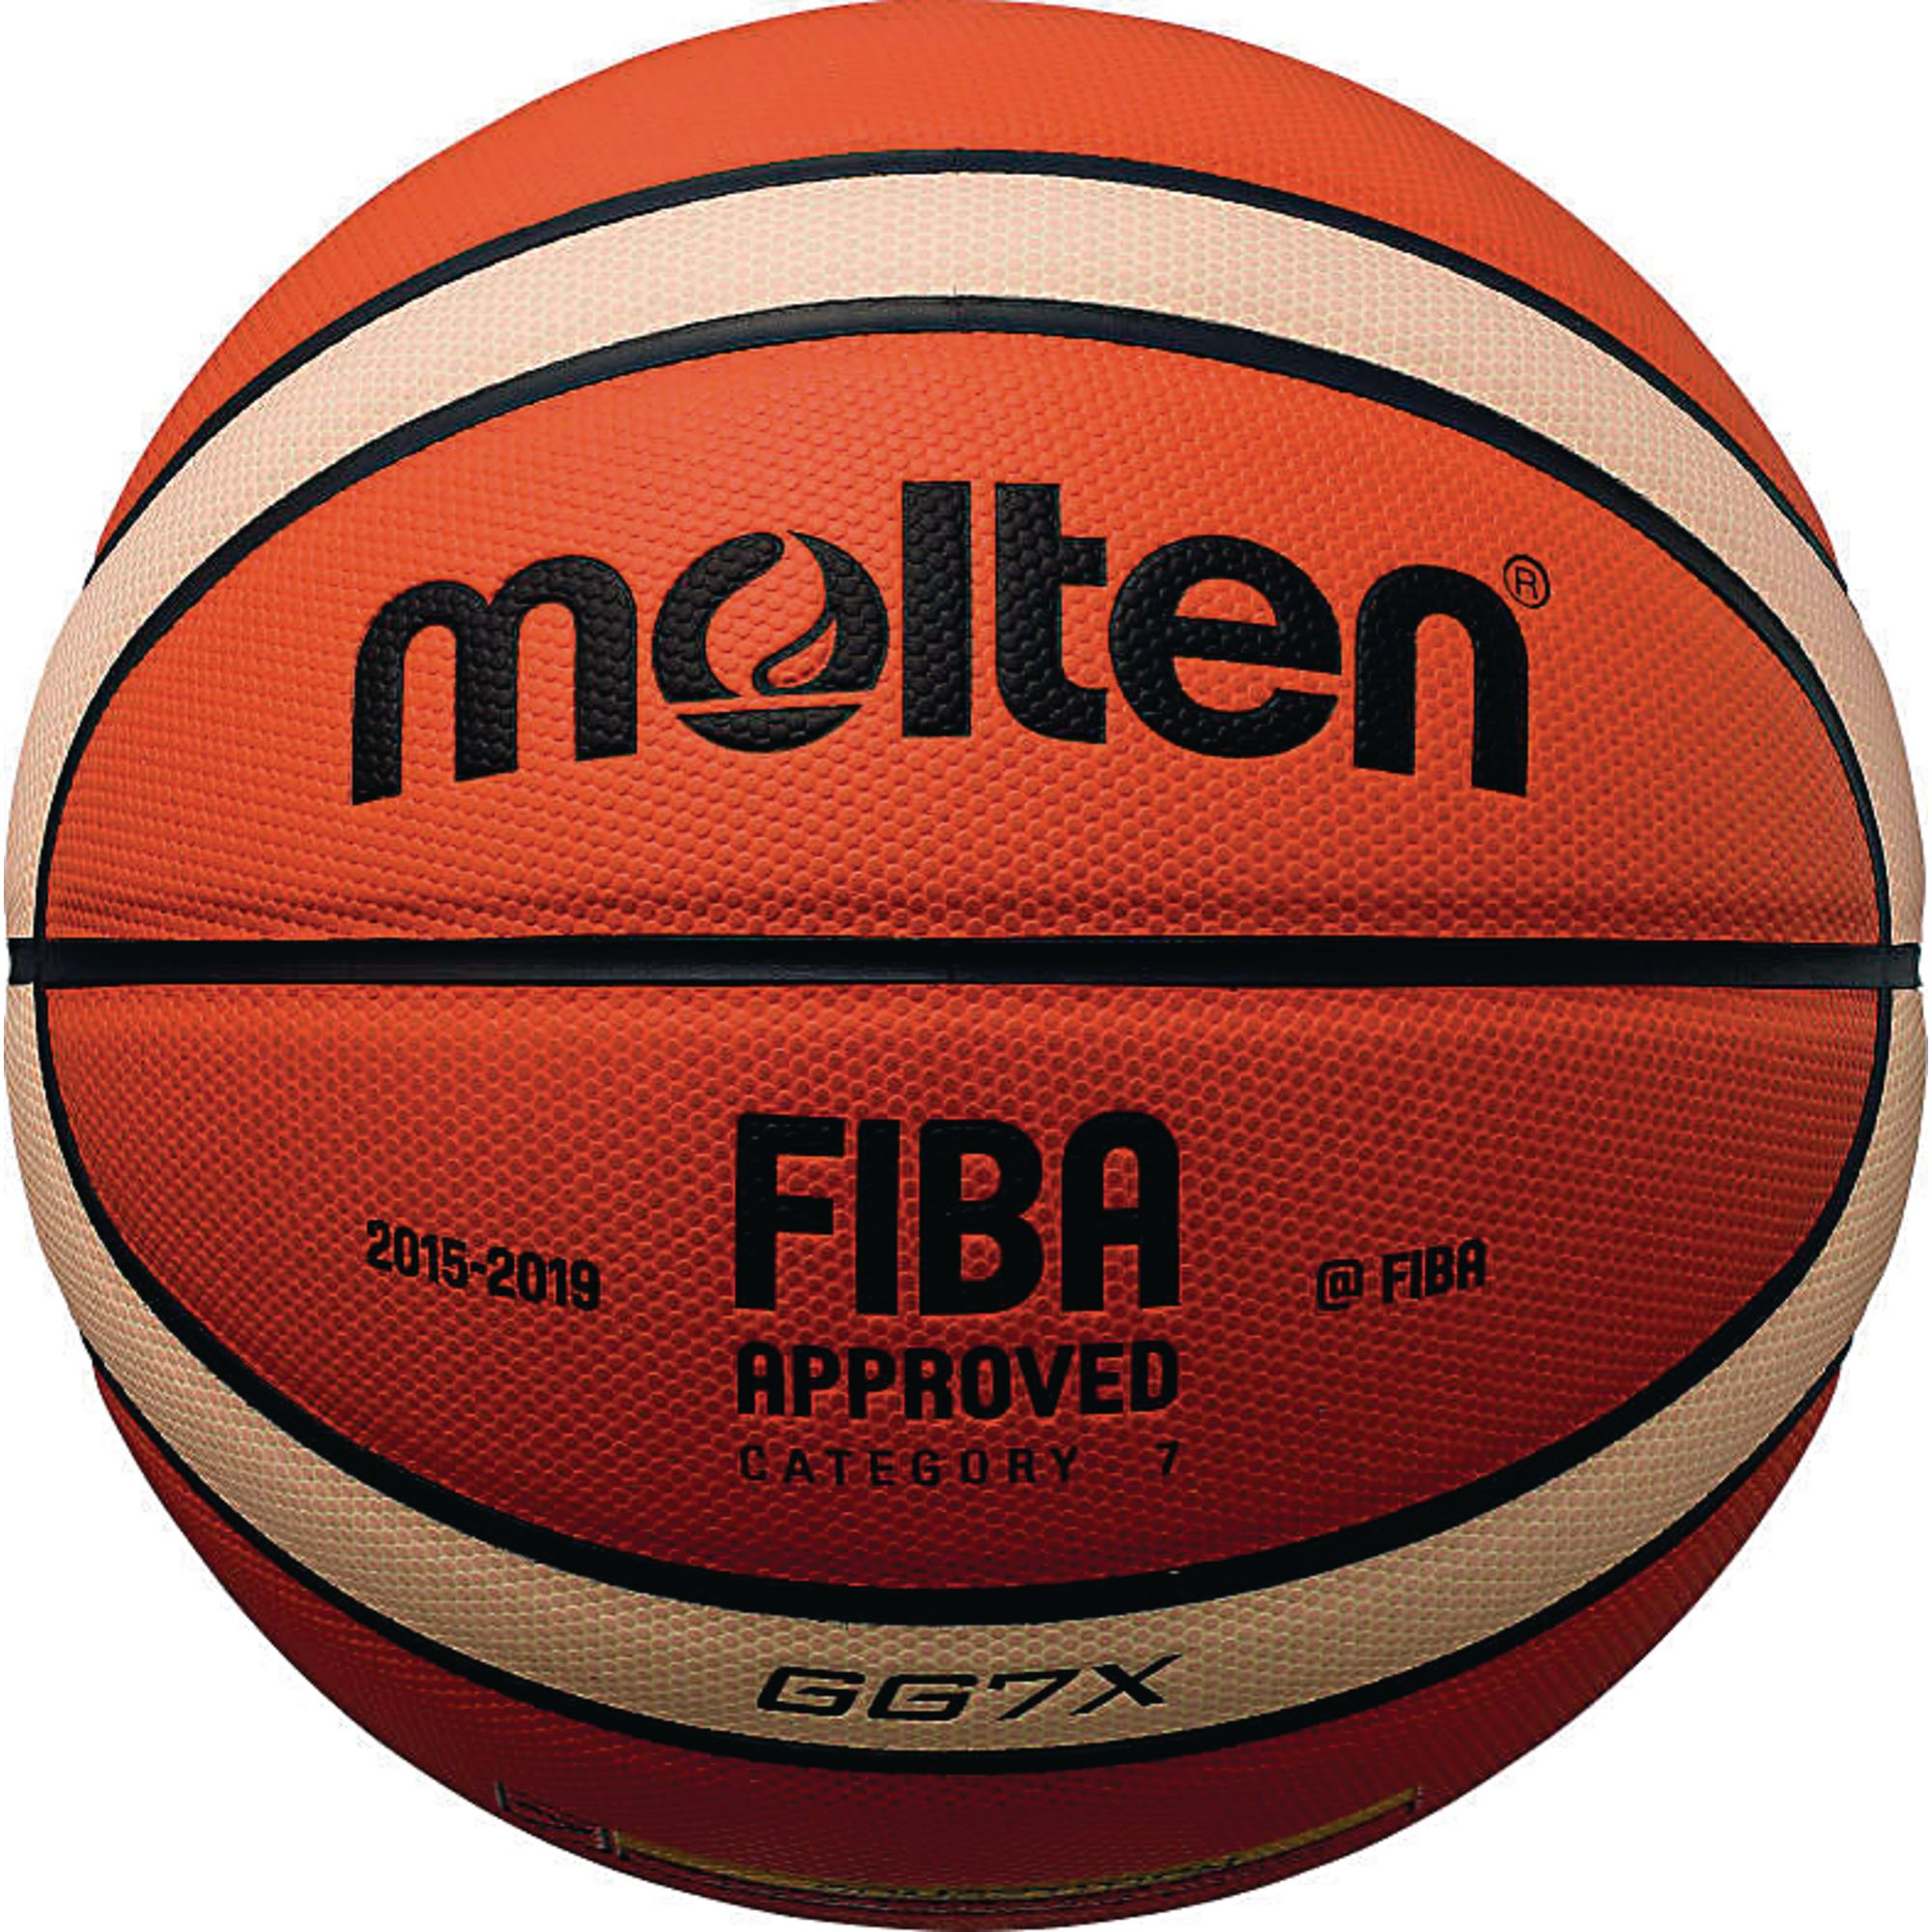 Bgroi Fiba Approved Trainingdrill 12 Panel Balls Well-Educated Molten Bgr-oi Rubber Basketball 3